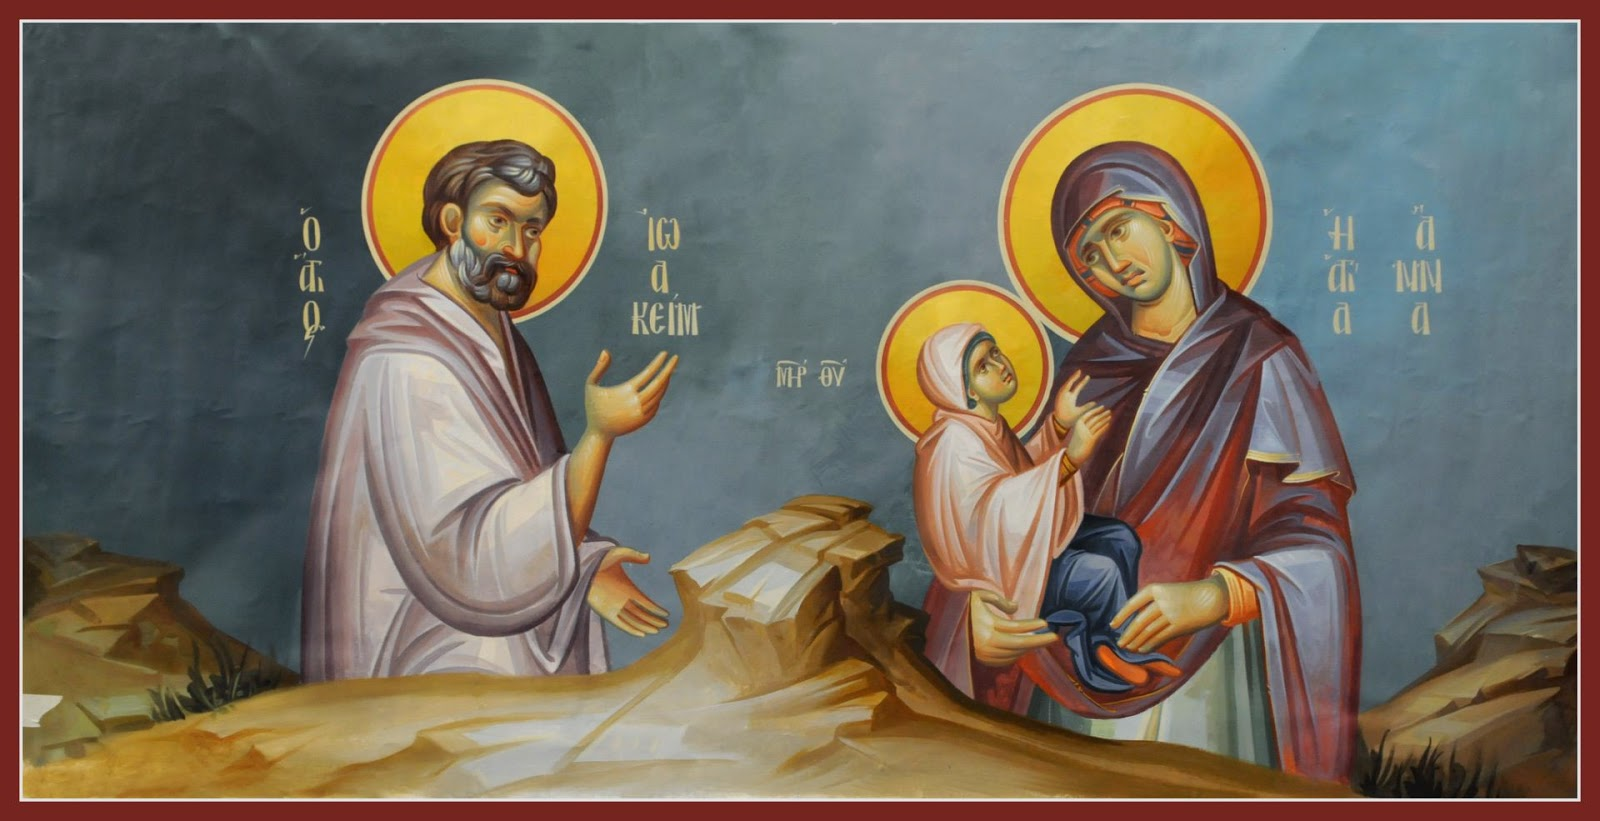 Saints Joachim and Anna with the Theotokos and Ever Virgin Mary